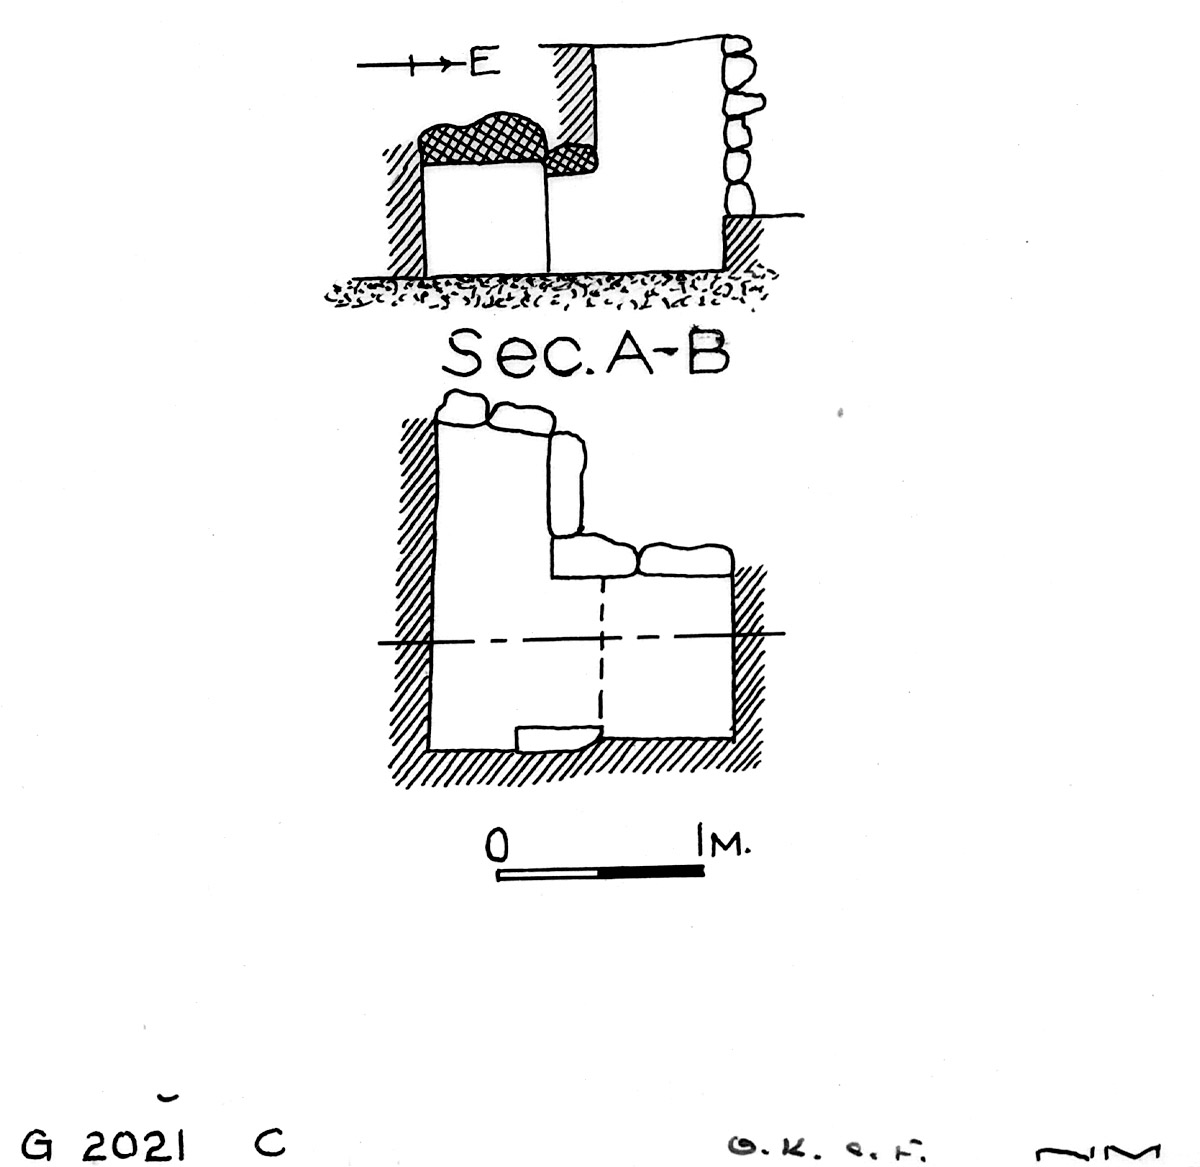 Maps and plans: G 2021c, Shaft C